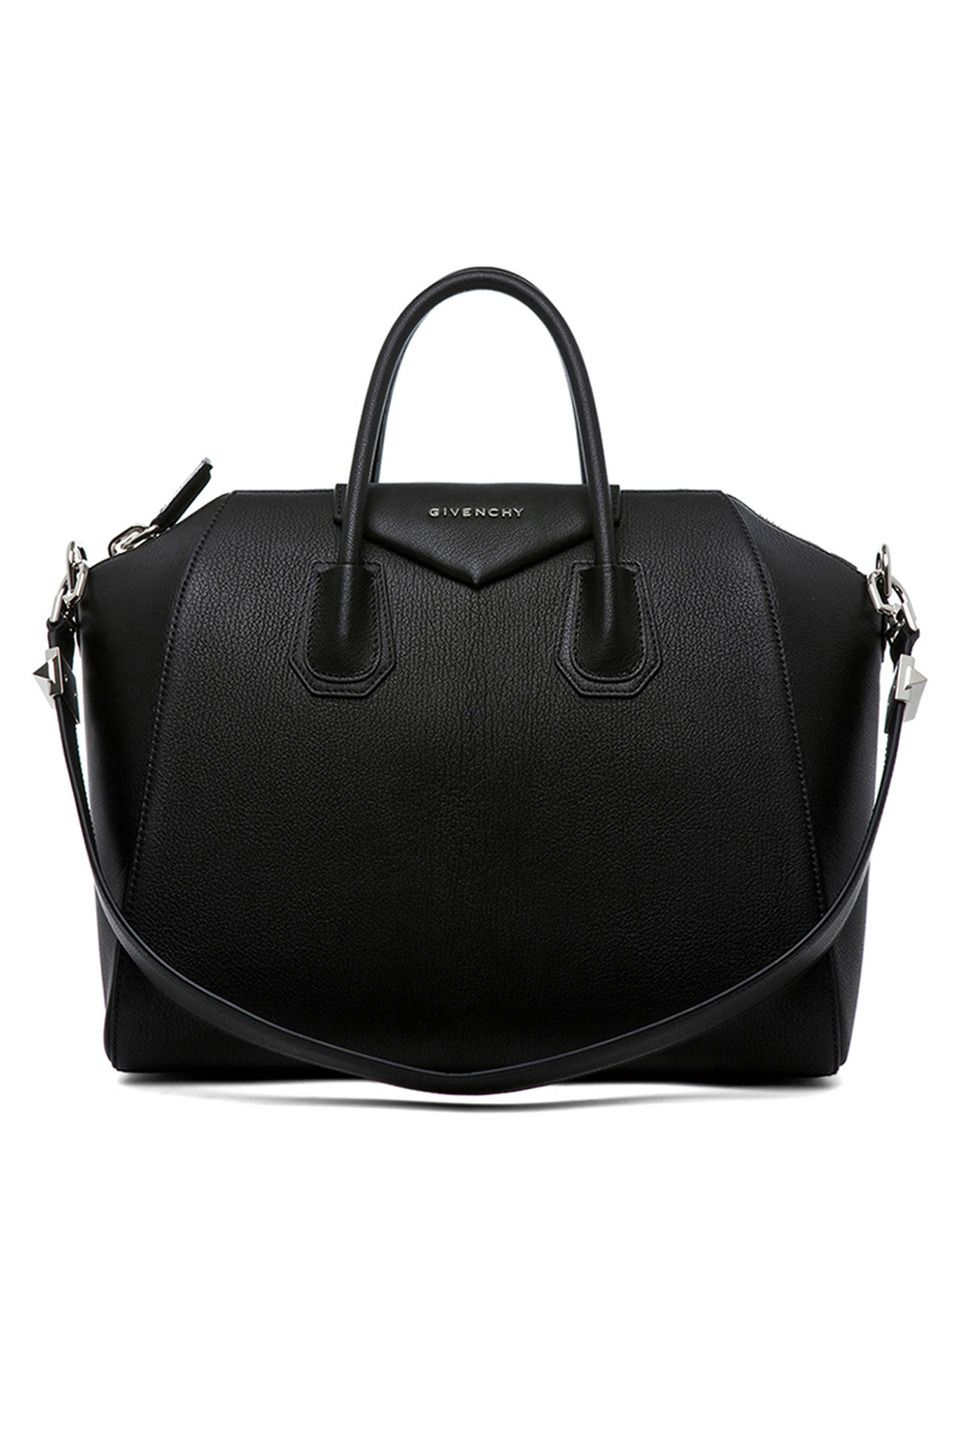 21dc4fda6b8e Givenchy - Medium Antigona in Matte Black  1199.99